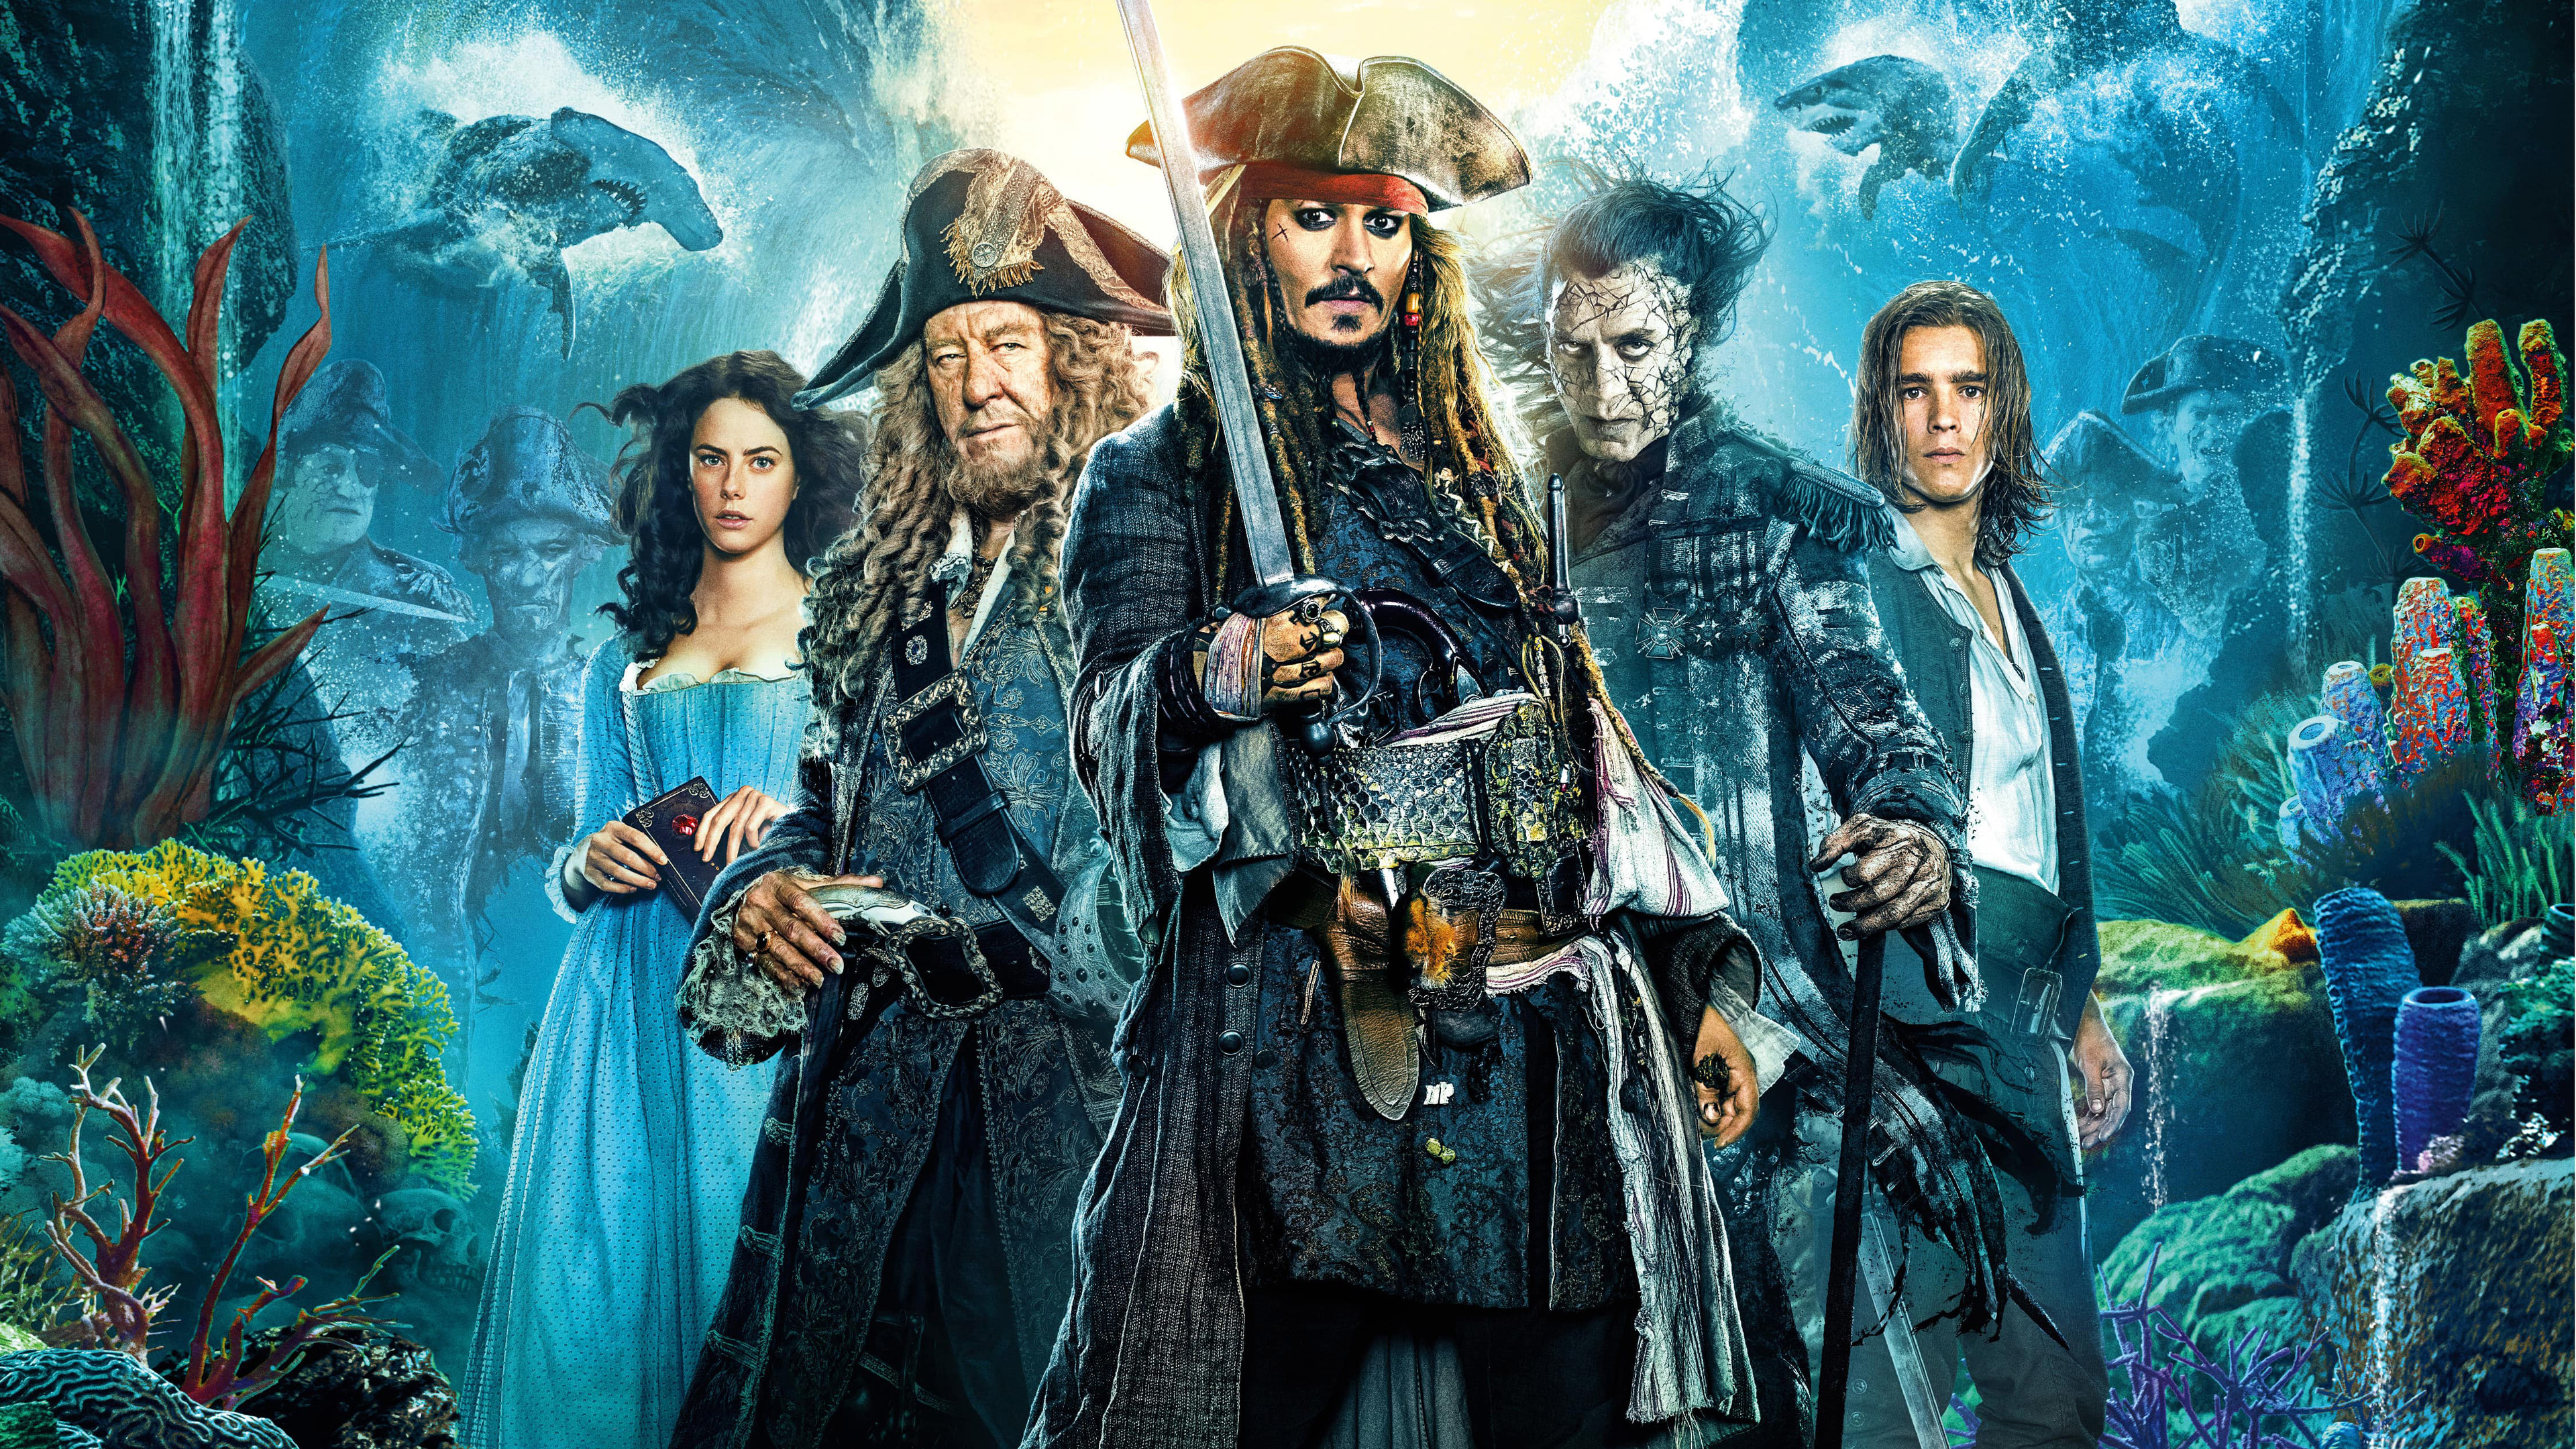 pirates of the caribbean dead men tell no tales movie 1536401956 - Pirates of the caribbean dead men tell no tales Movie - skull wallpapers, pirates of the caribbean wallpapers, pirates of the caribbean dead men tell no tales wallpapers, hd-wallpapers, 4k-wallpapers, 2017 movies wallpapers